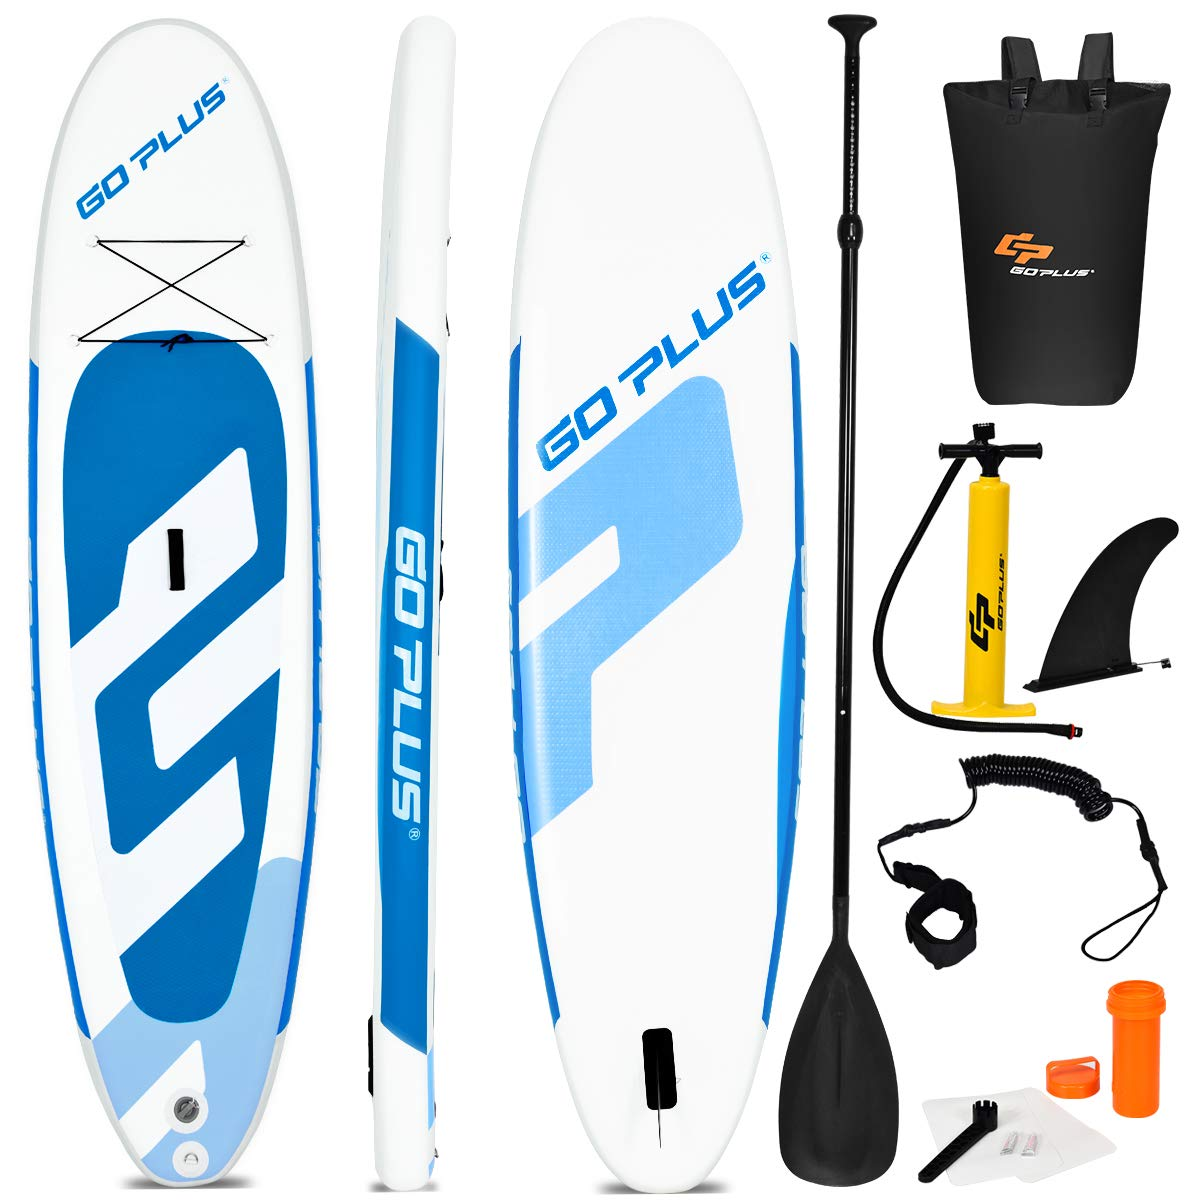 Goplus Inflatable Stand Up Paddle Board, 6'' Thick SUP with Accessory Pack, Adjustable Paddle, Carry Bag, Bottom Fin, Hand Pump, Non-Slip Deck, Leash, Repair Kit (Blue, 11FT) by Goplus